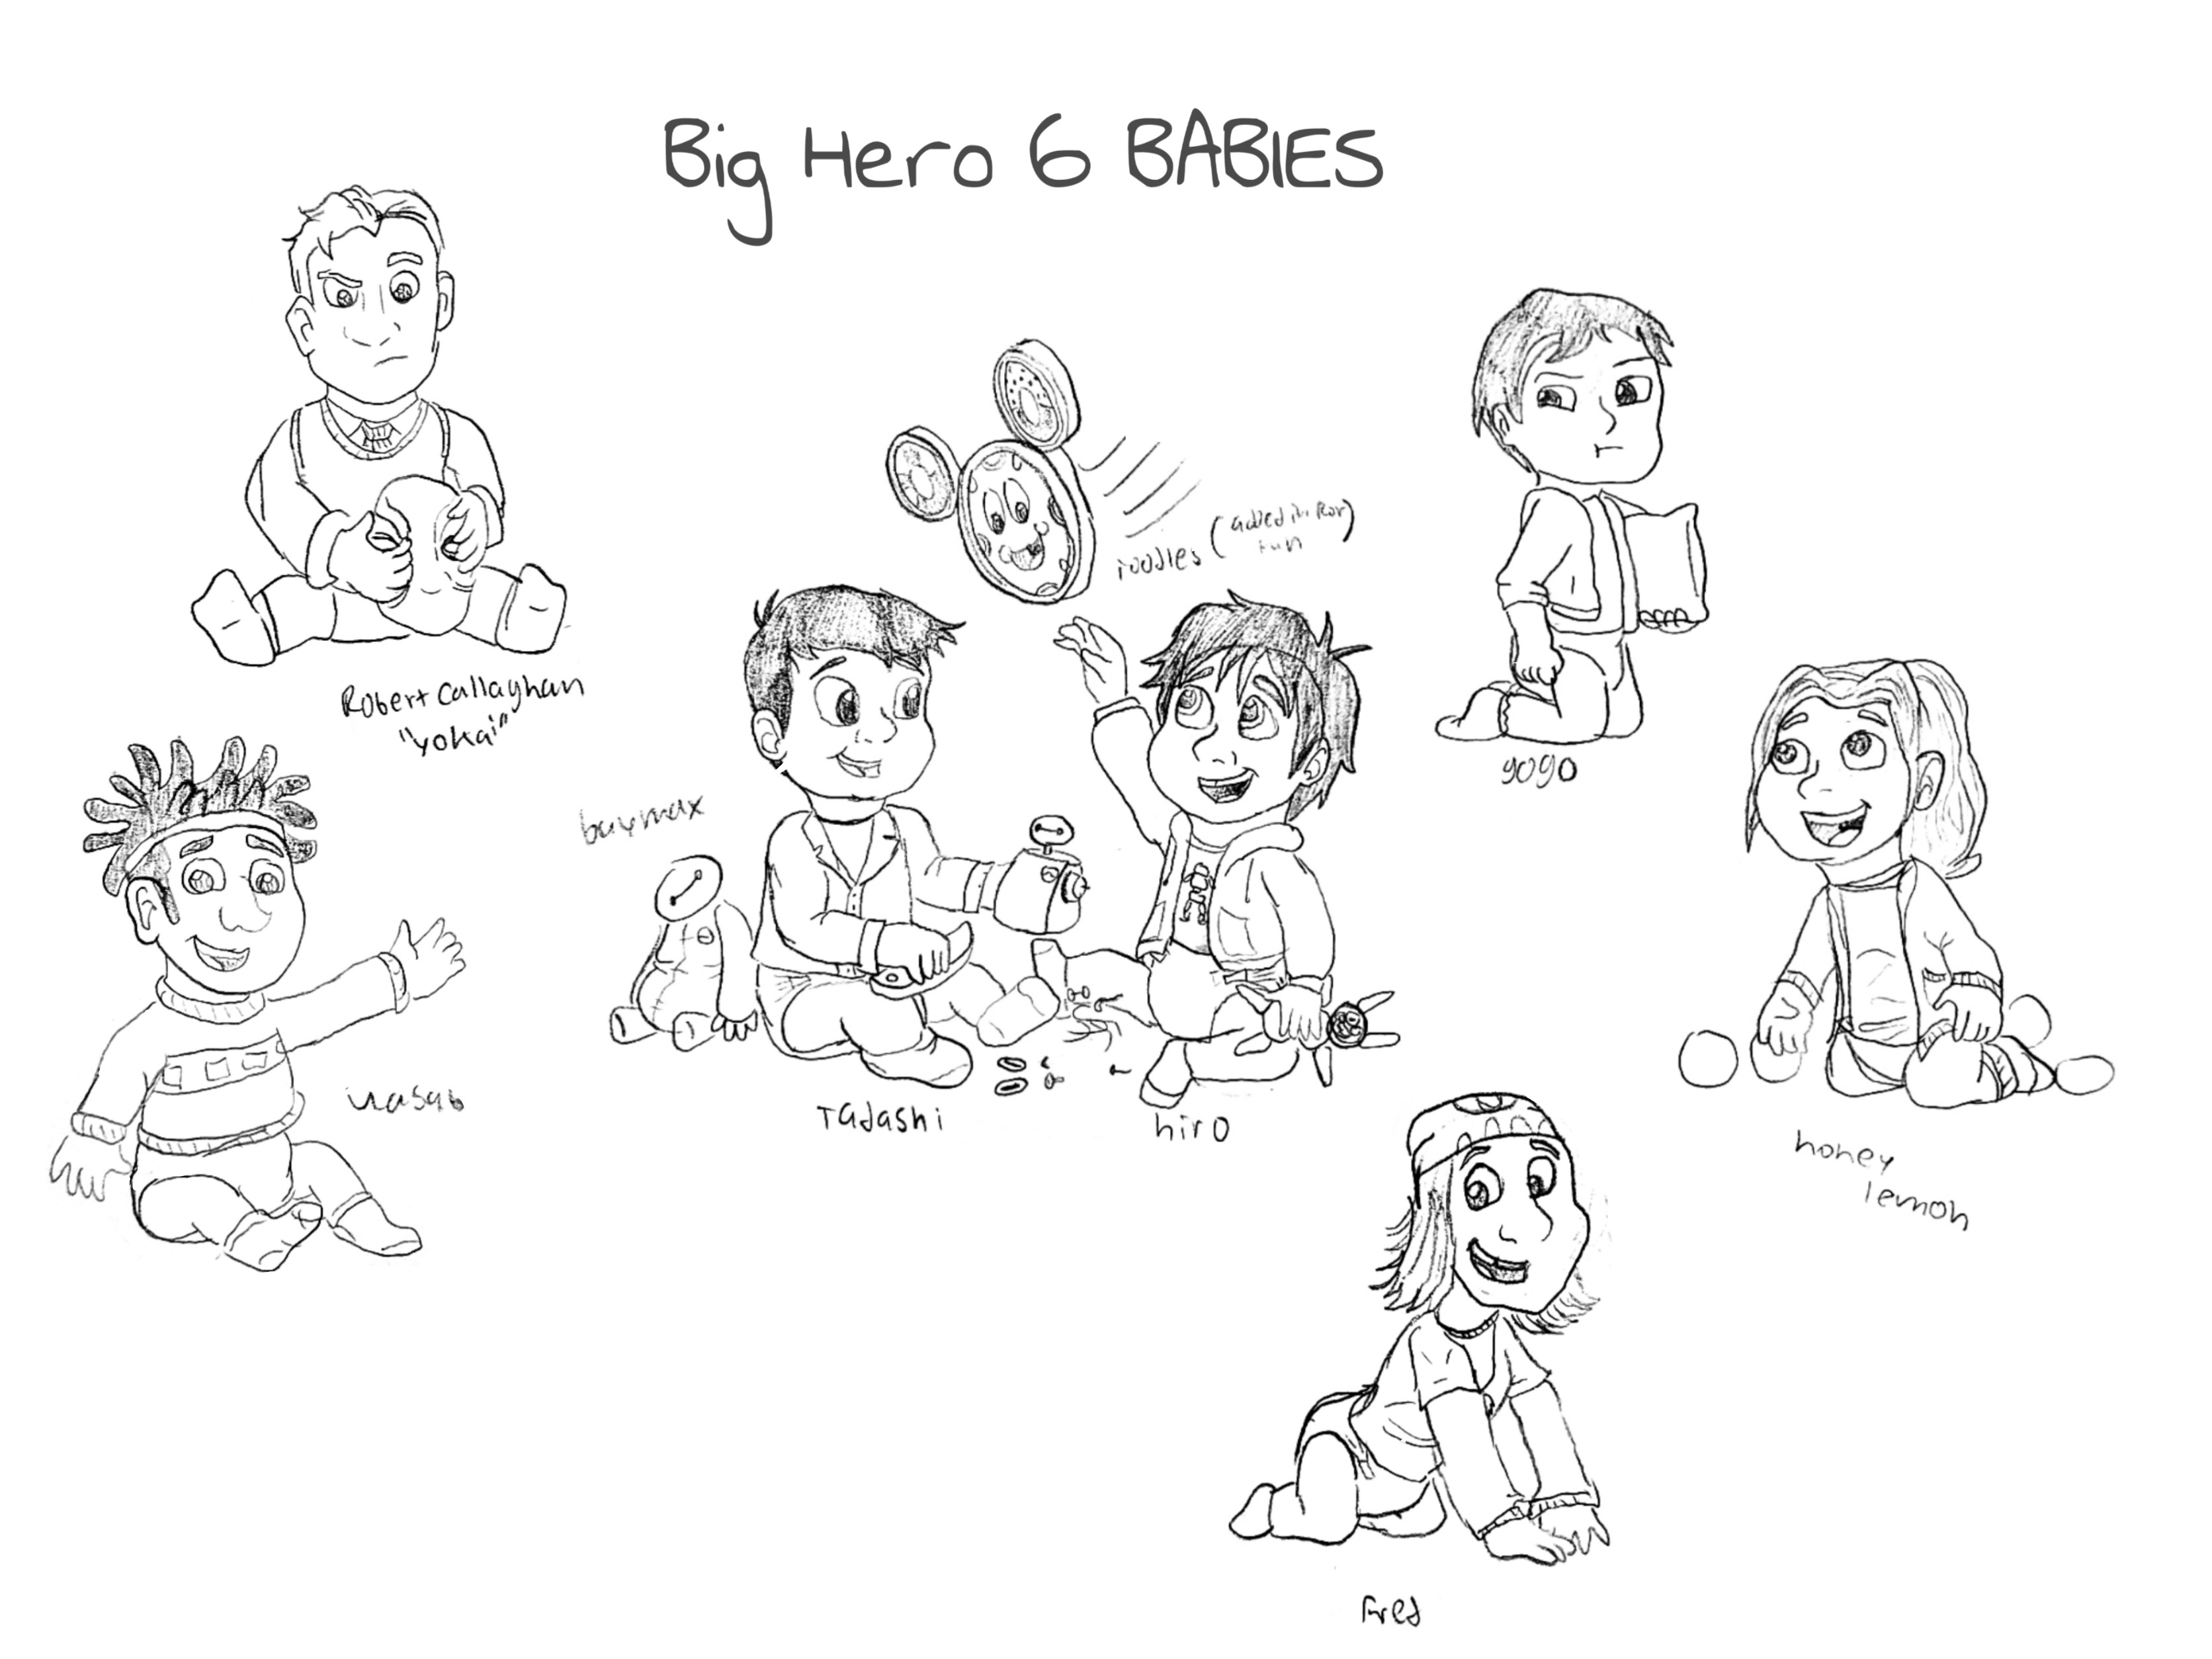 The Big Hero 6 babies are Finally here (Read my comment below for challenge and the rules)